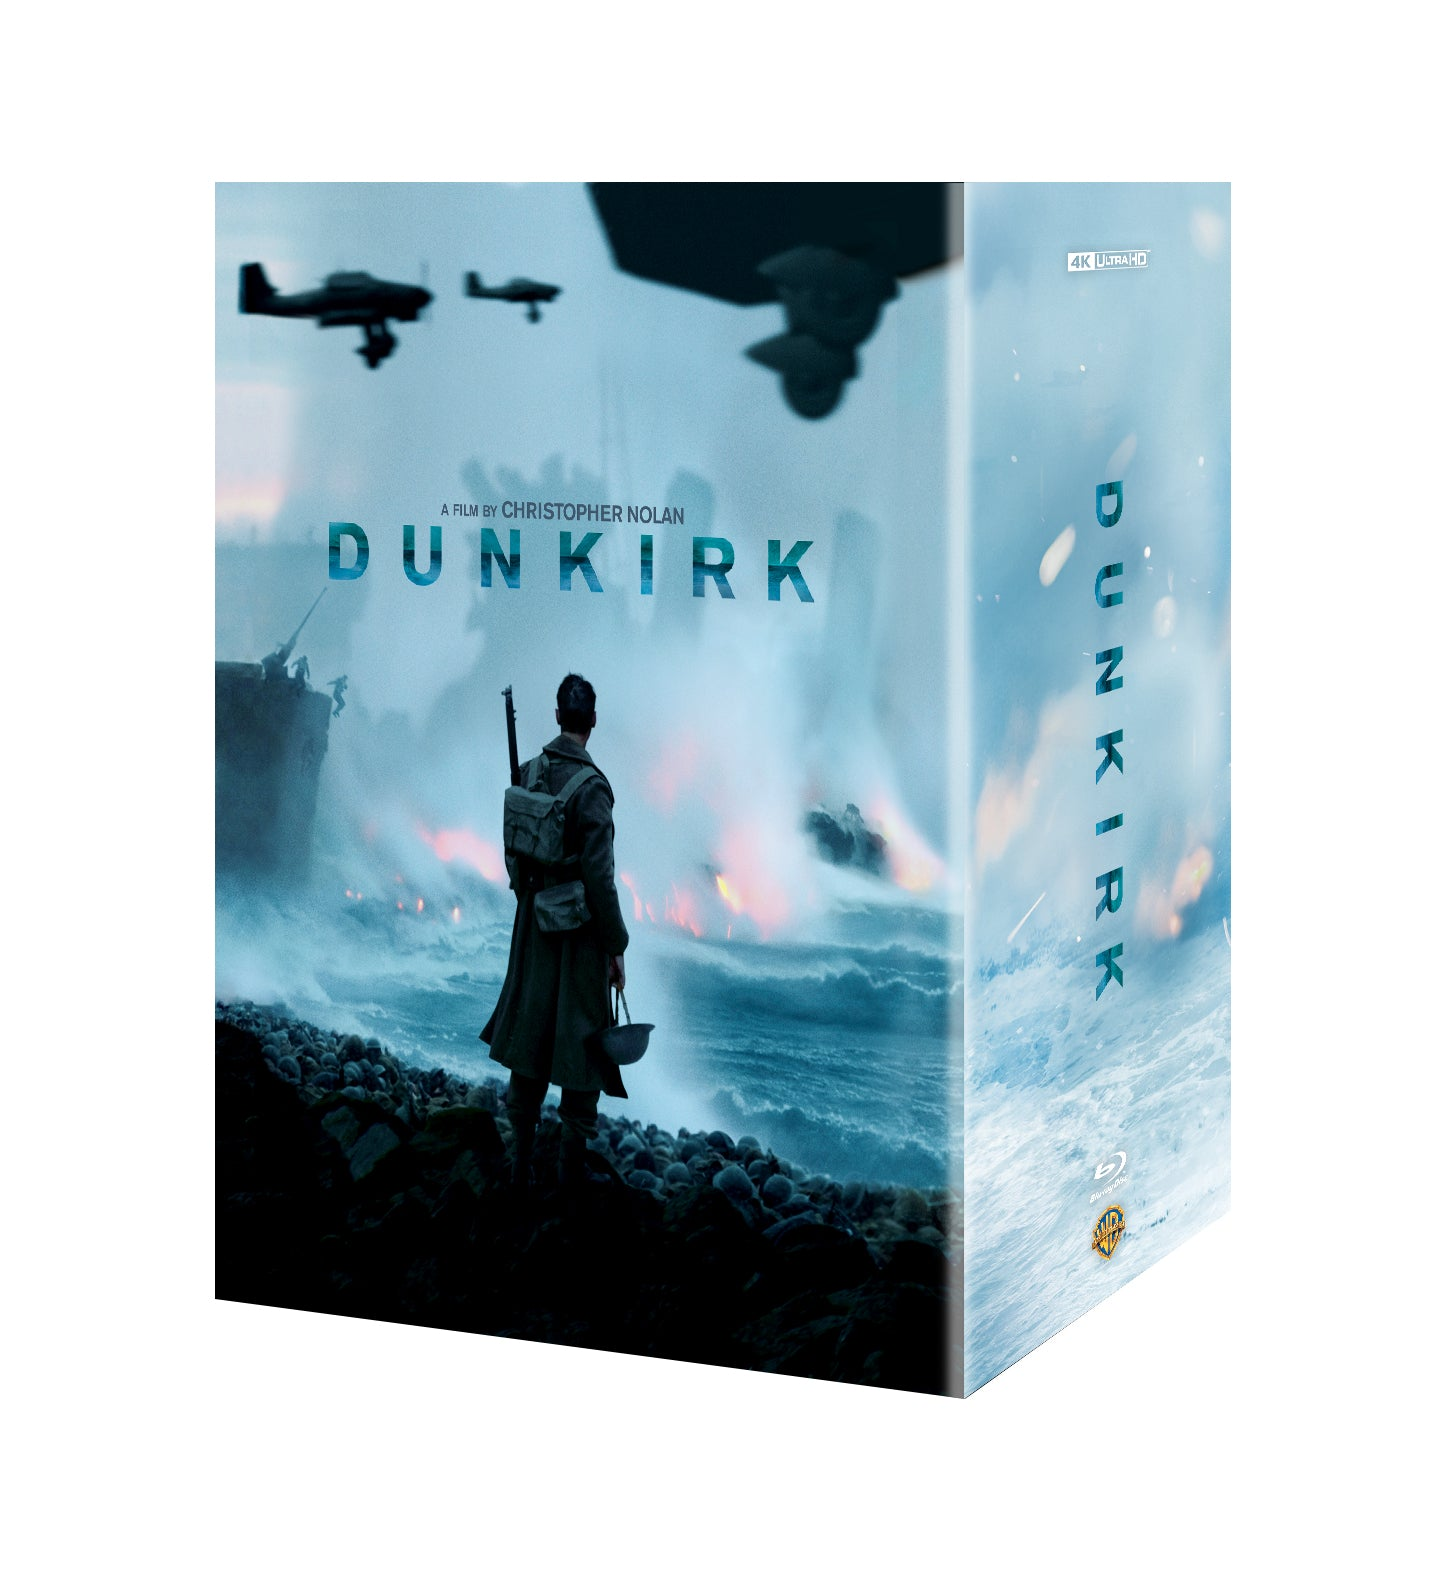 [ME#16] Dunkirk Steelbook (One Click)